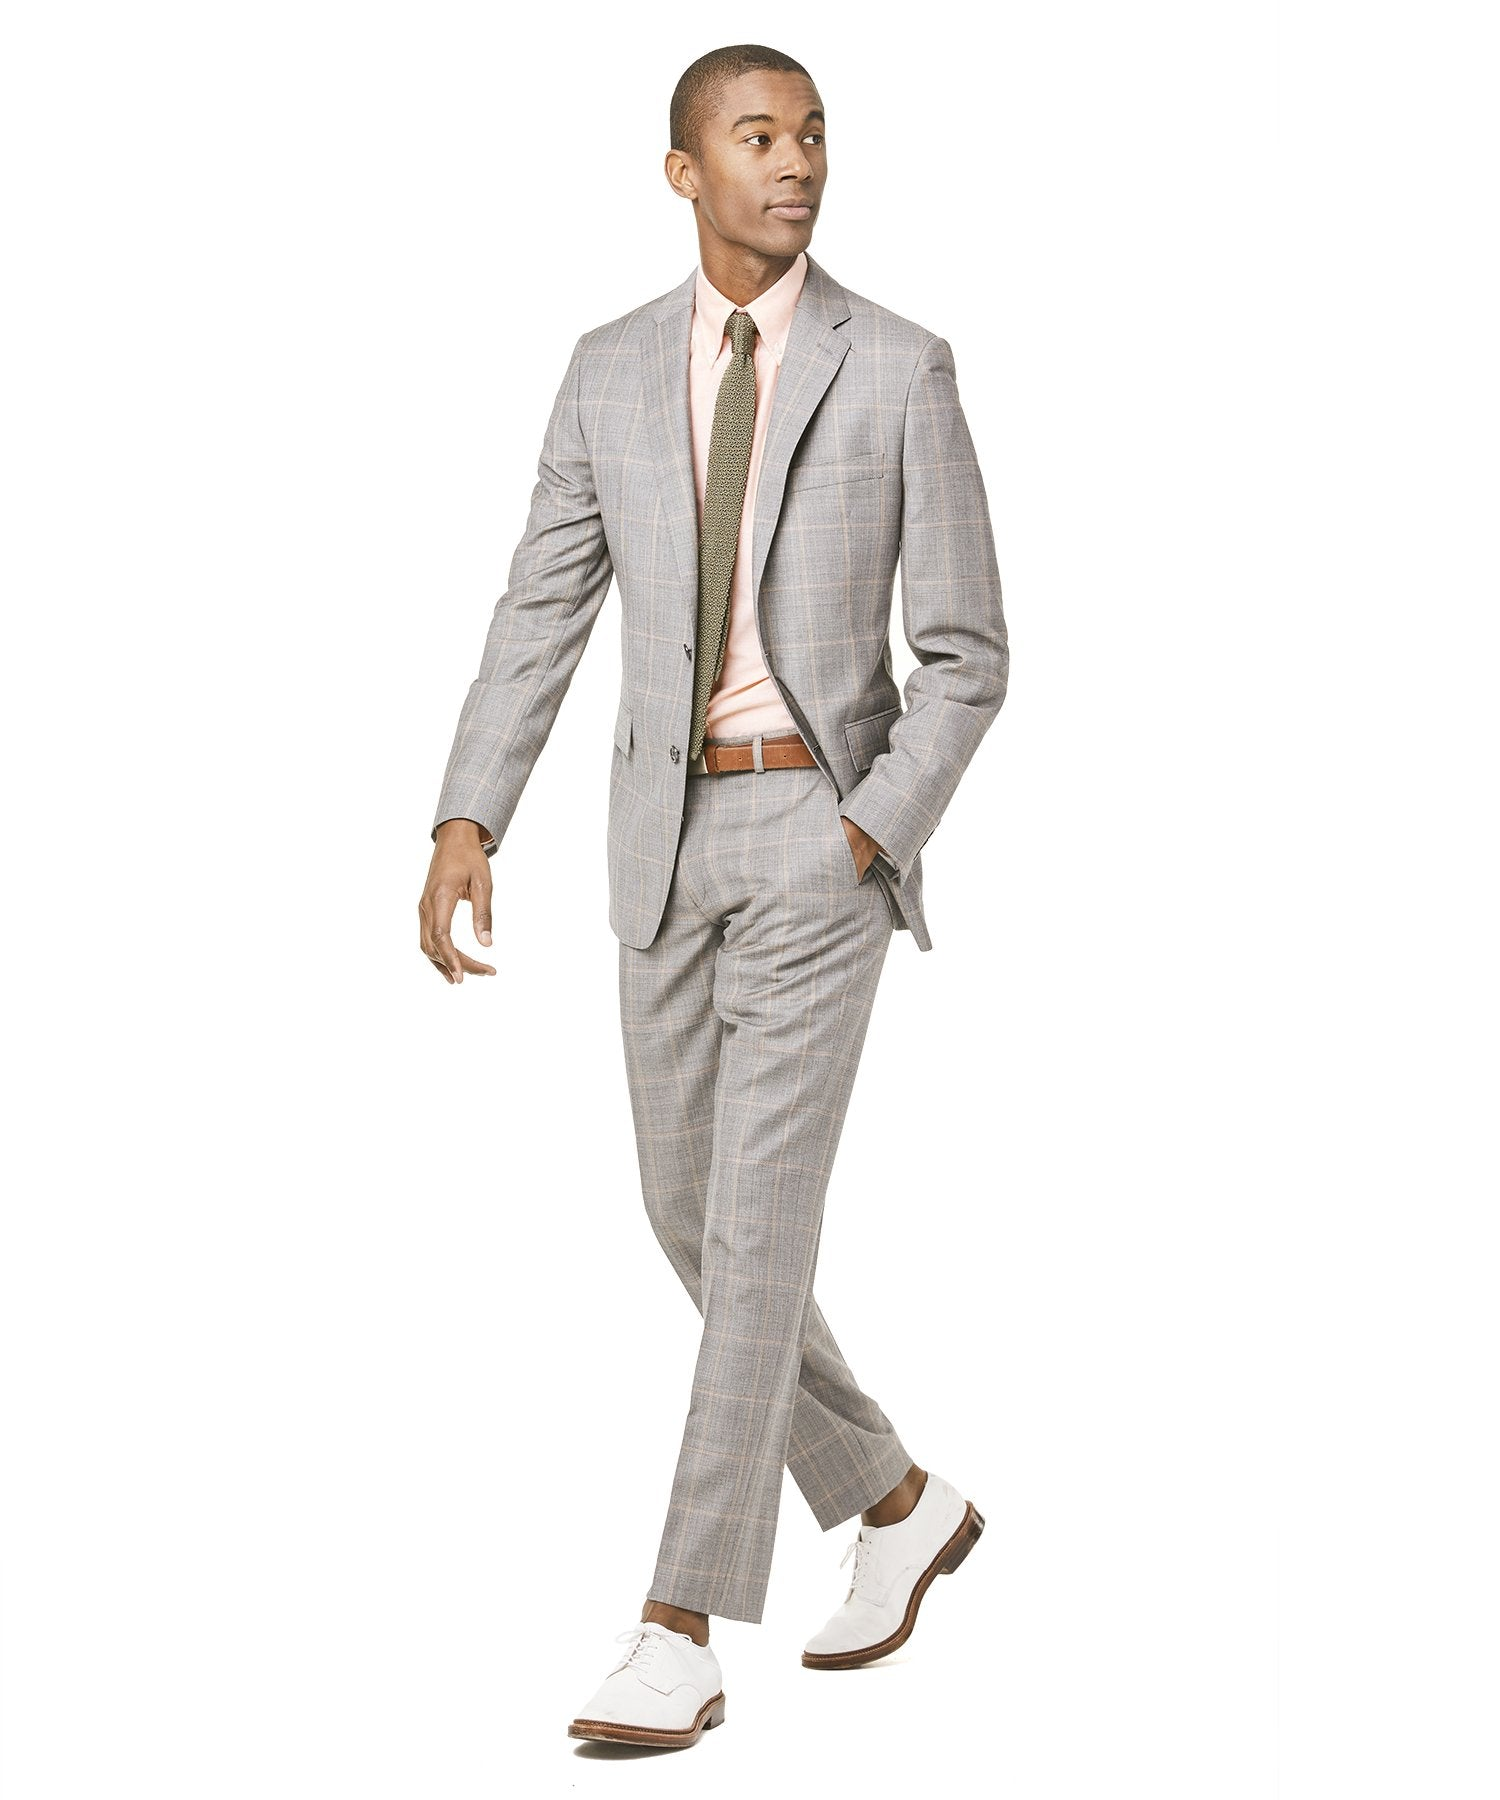 Todd Snyder White Label Prince of Wales Tropical Wool Sutton Suit in Grey